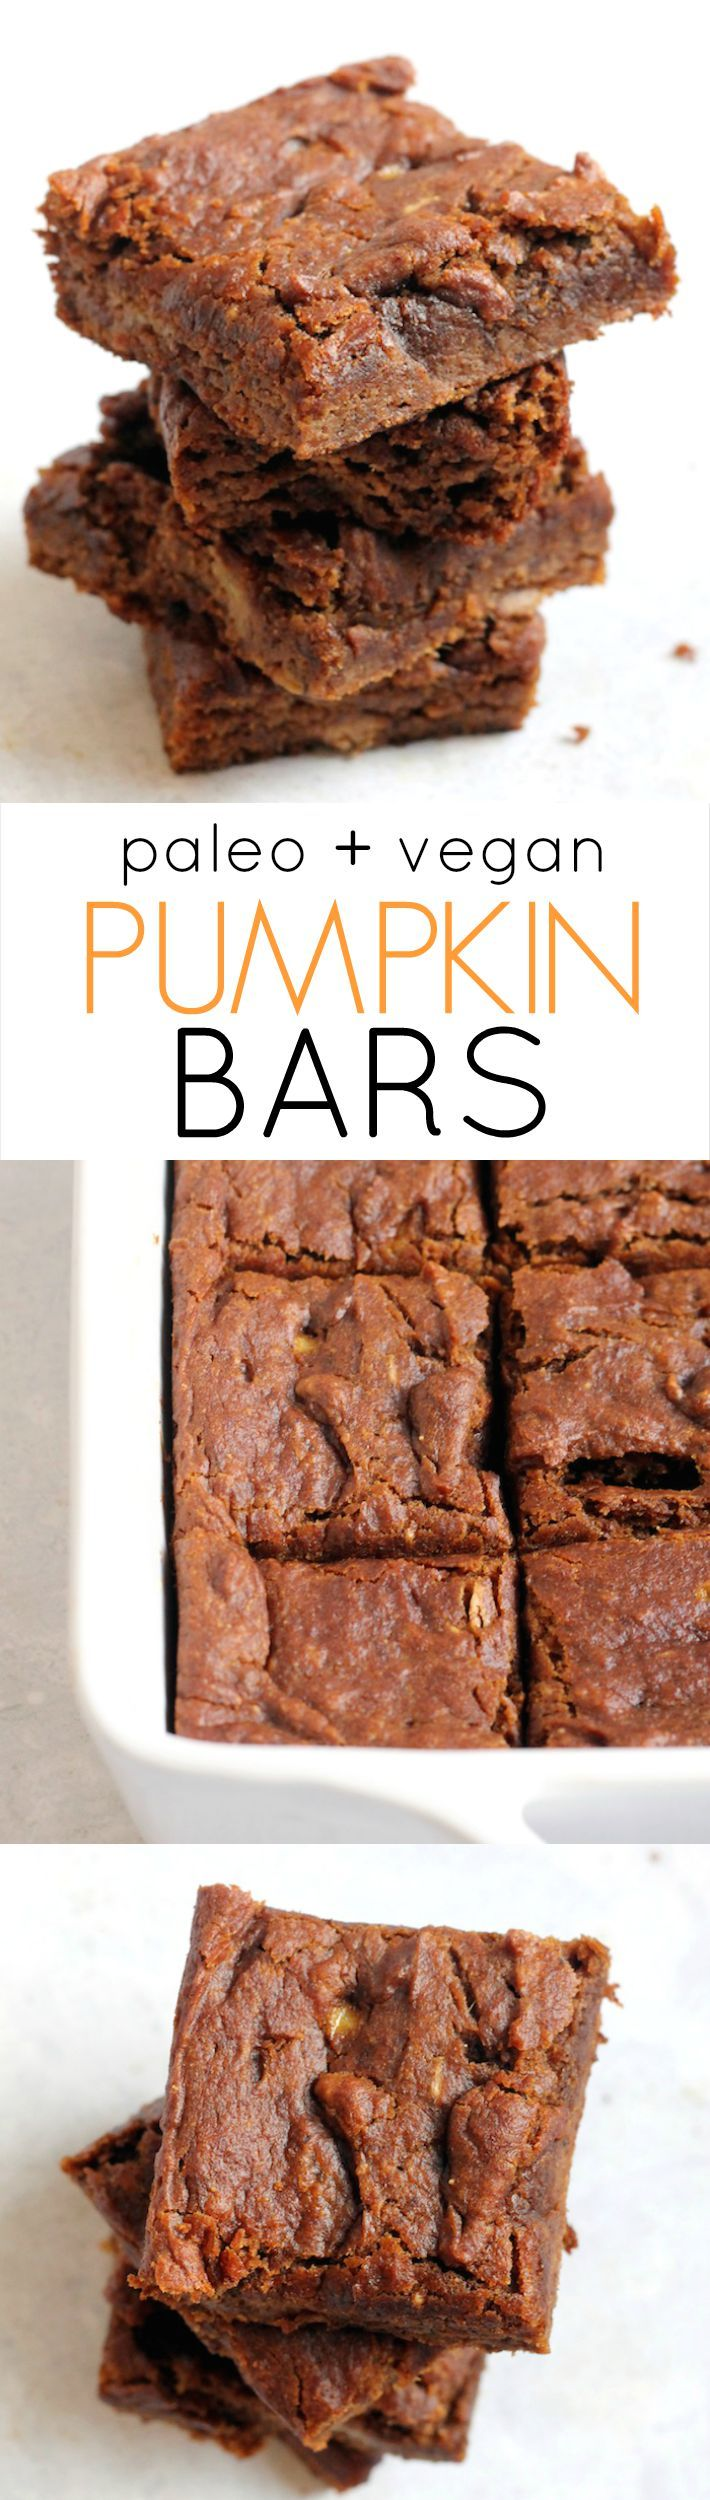 The Ultimate Pumpkin Bars—paleo, vegan, and free of oil, and refined sugar! These quick and easy bar